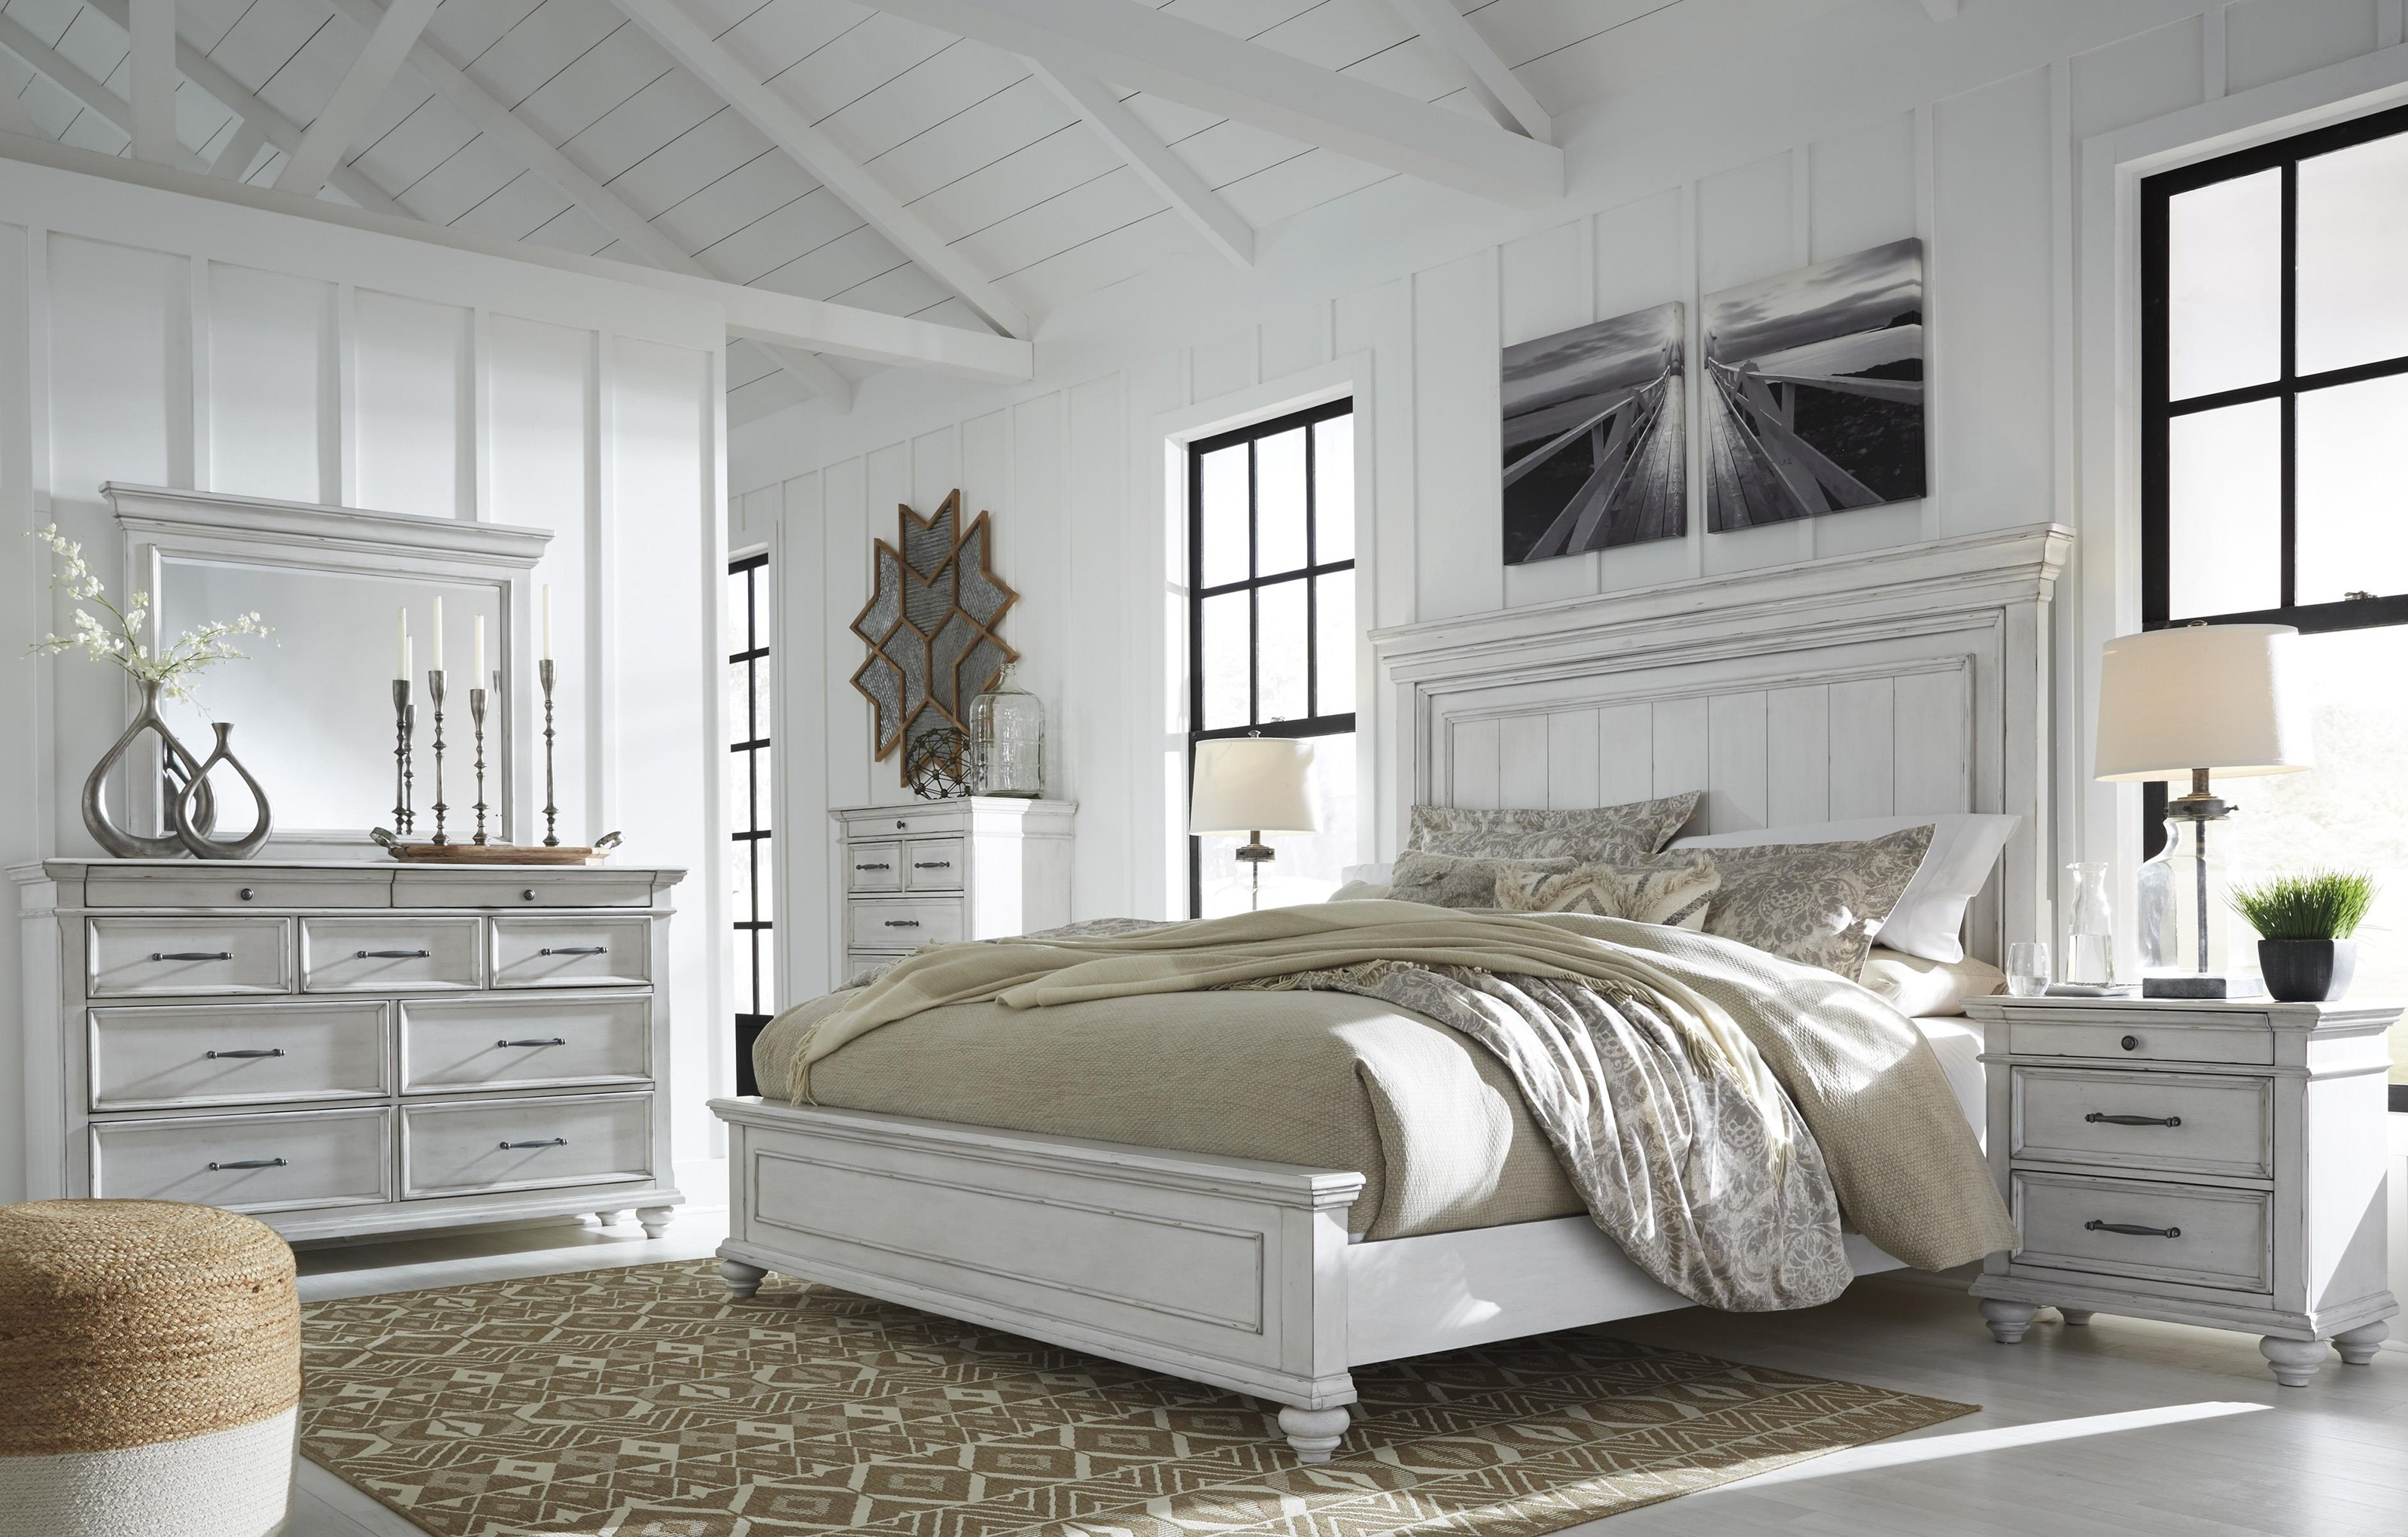 Kanwyn 6 Piece Queen Panel Bedroom Set by Benchcraft at Sam Levitz Outlet